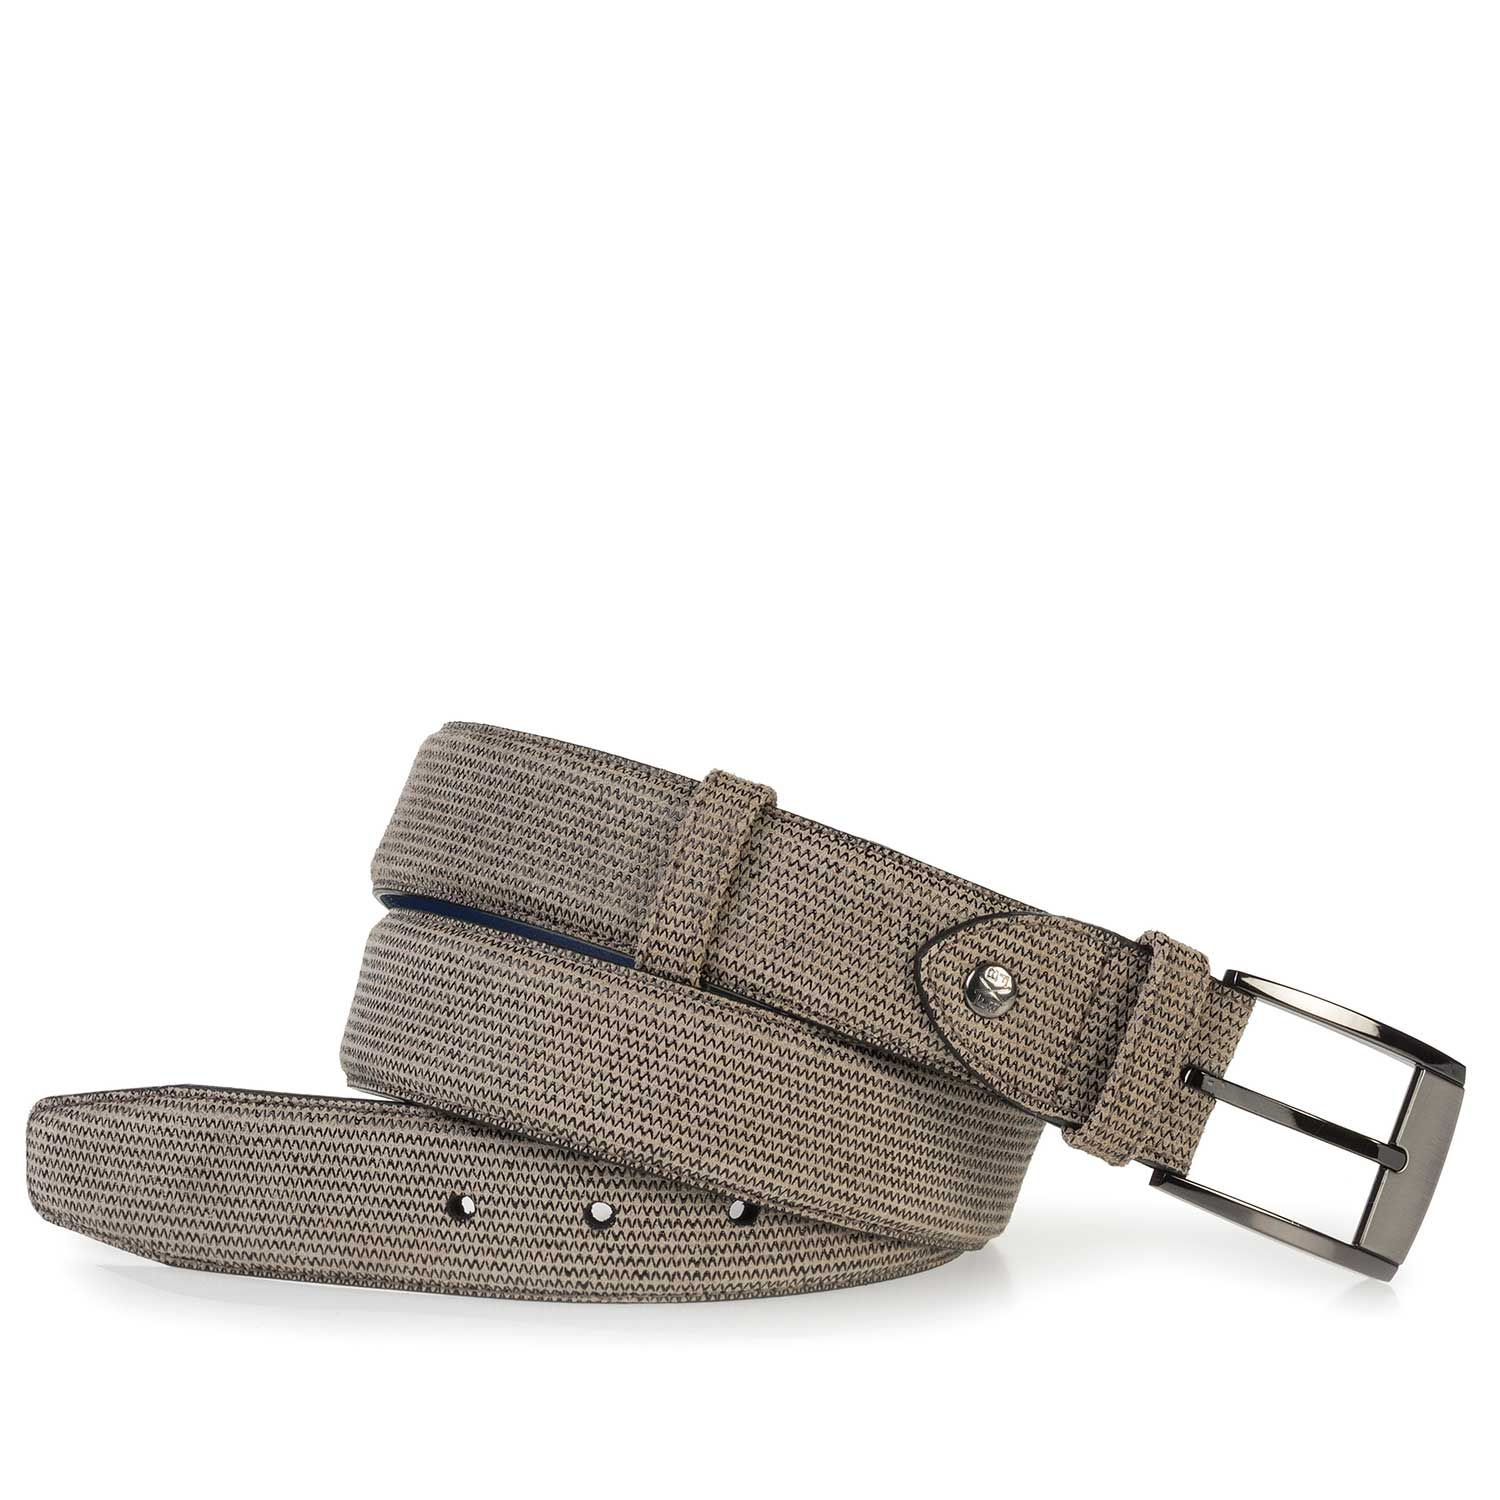 75180/21 - Sand-coloured suede leather belt